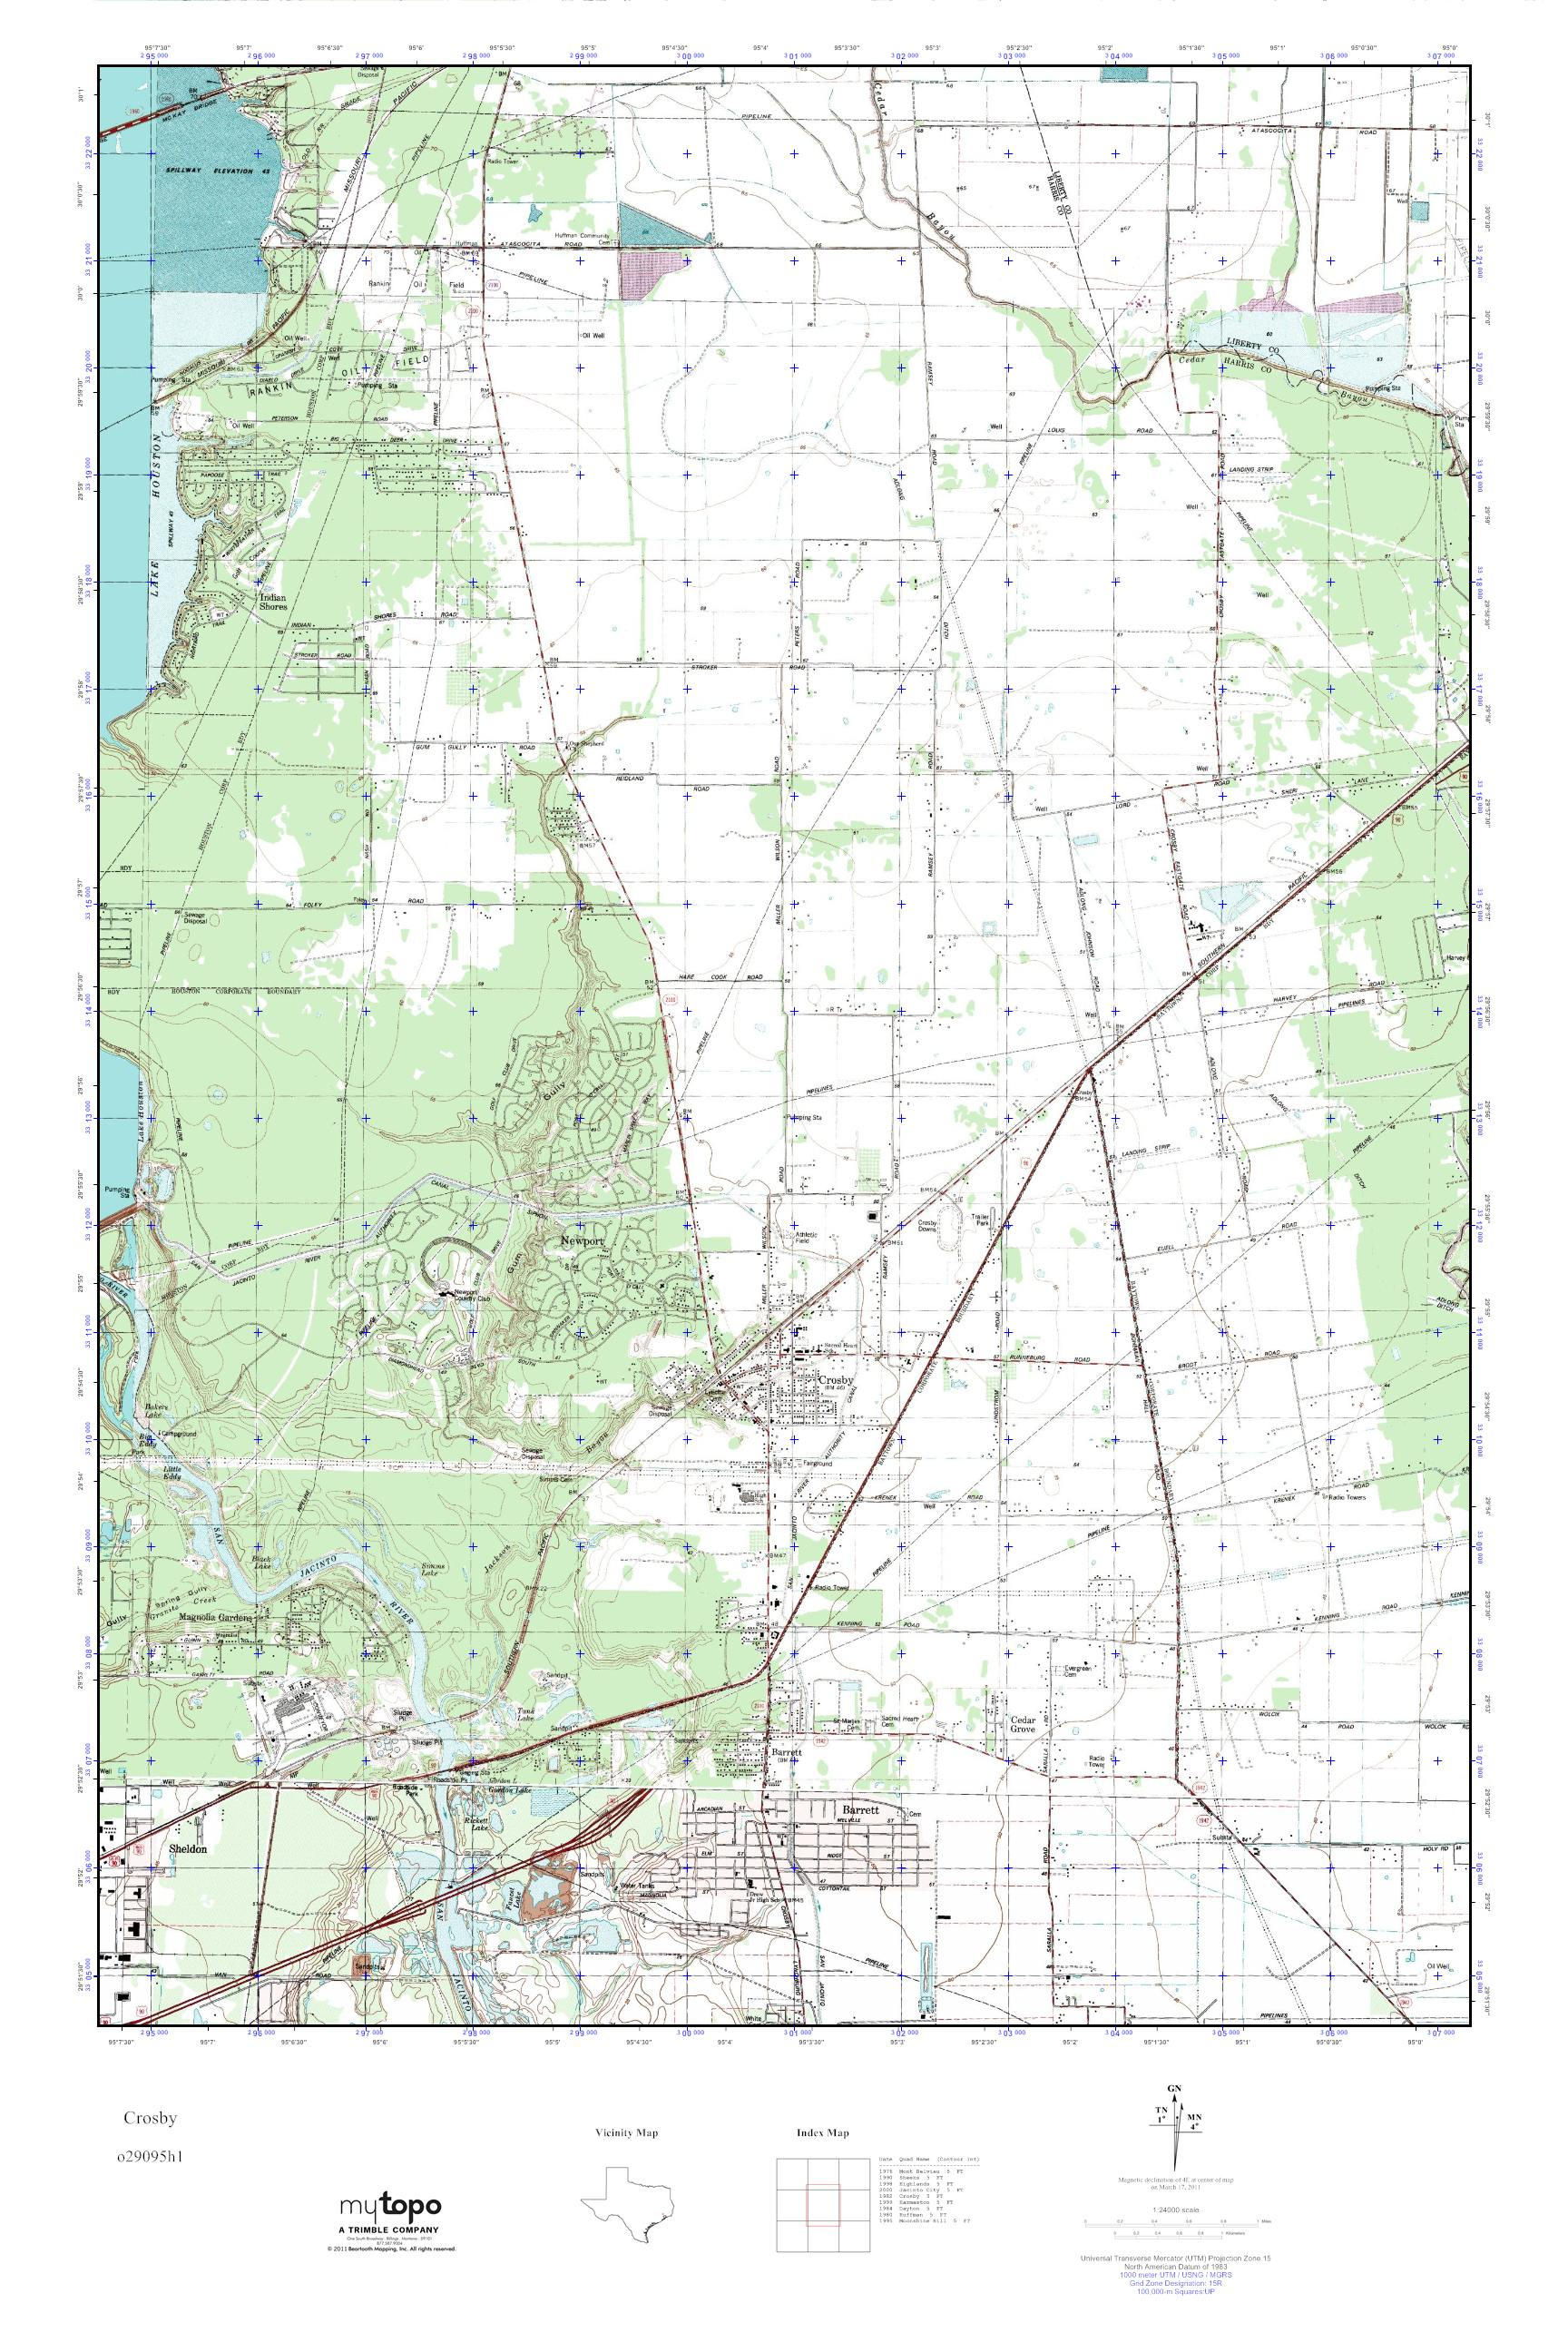 Mytopo Crosby, Texas Usgs Quad Topo Map - Crosby Texas Map